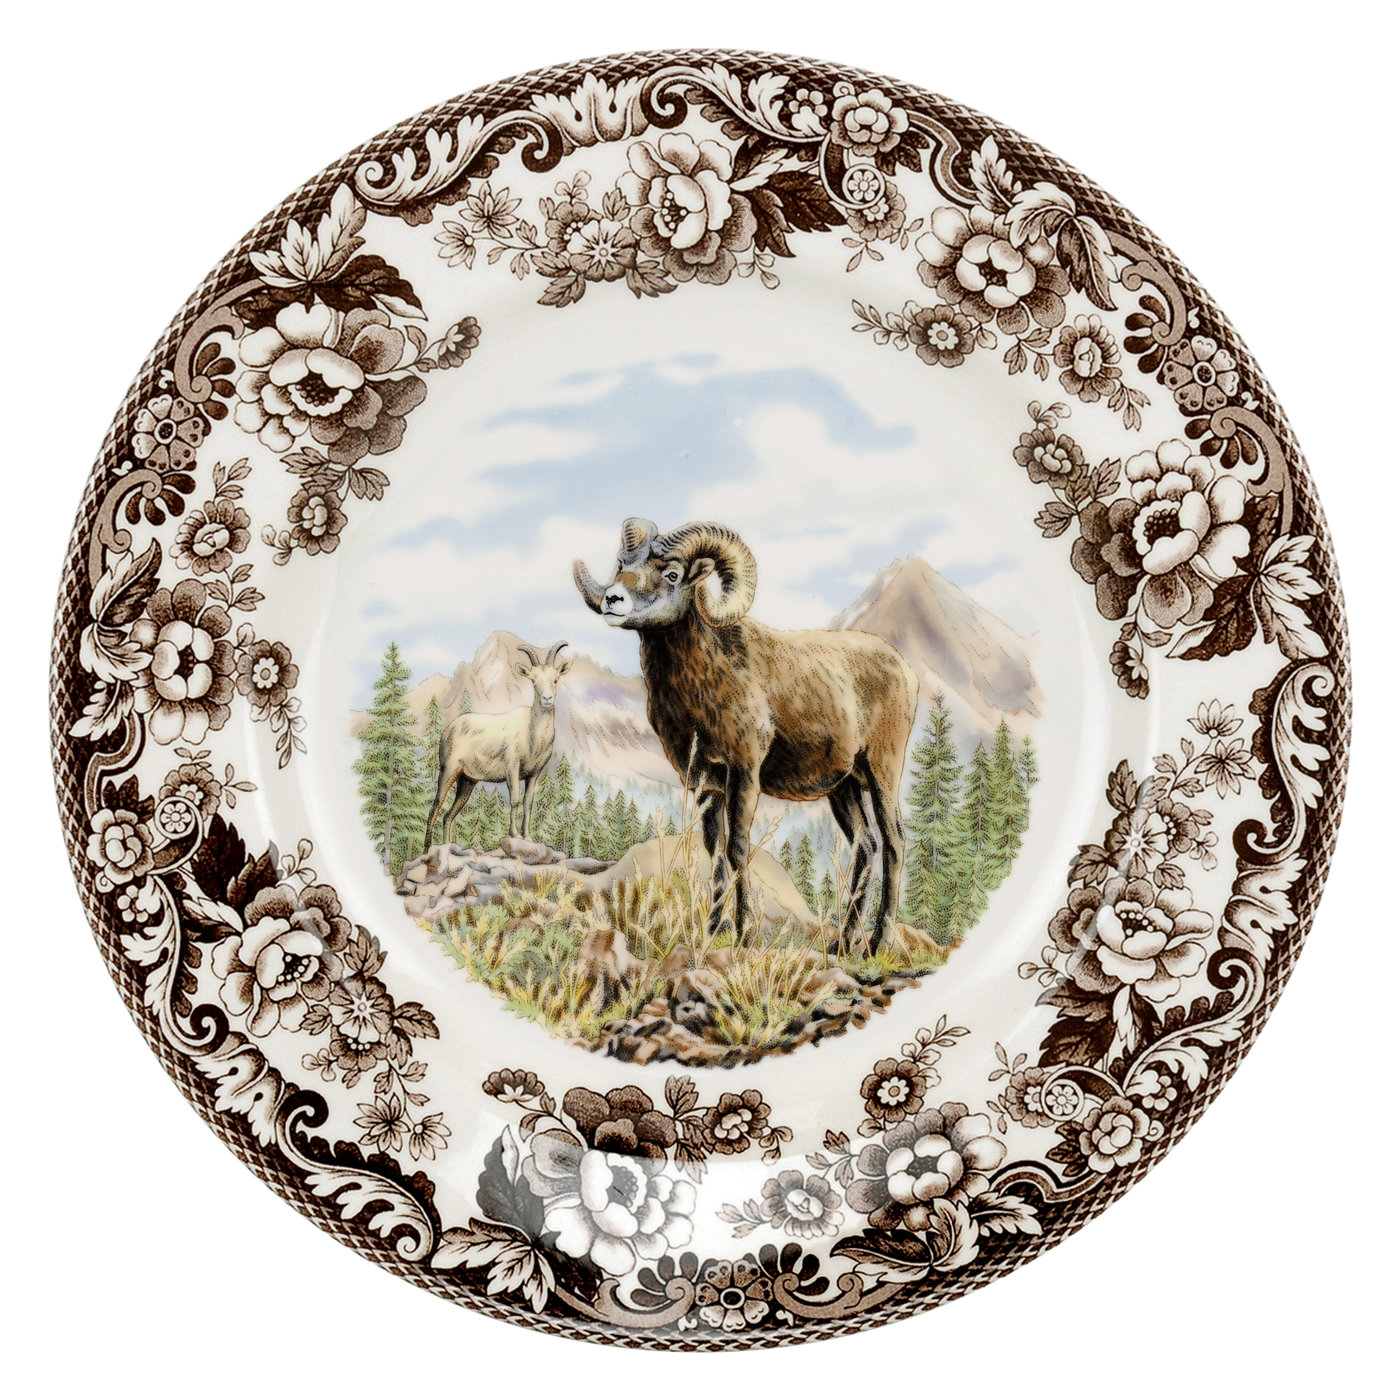 Spode Woodland Dinner Plate 10.5 Inch (Bighorn Sheep) image number null